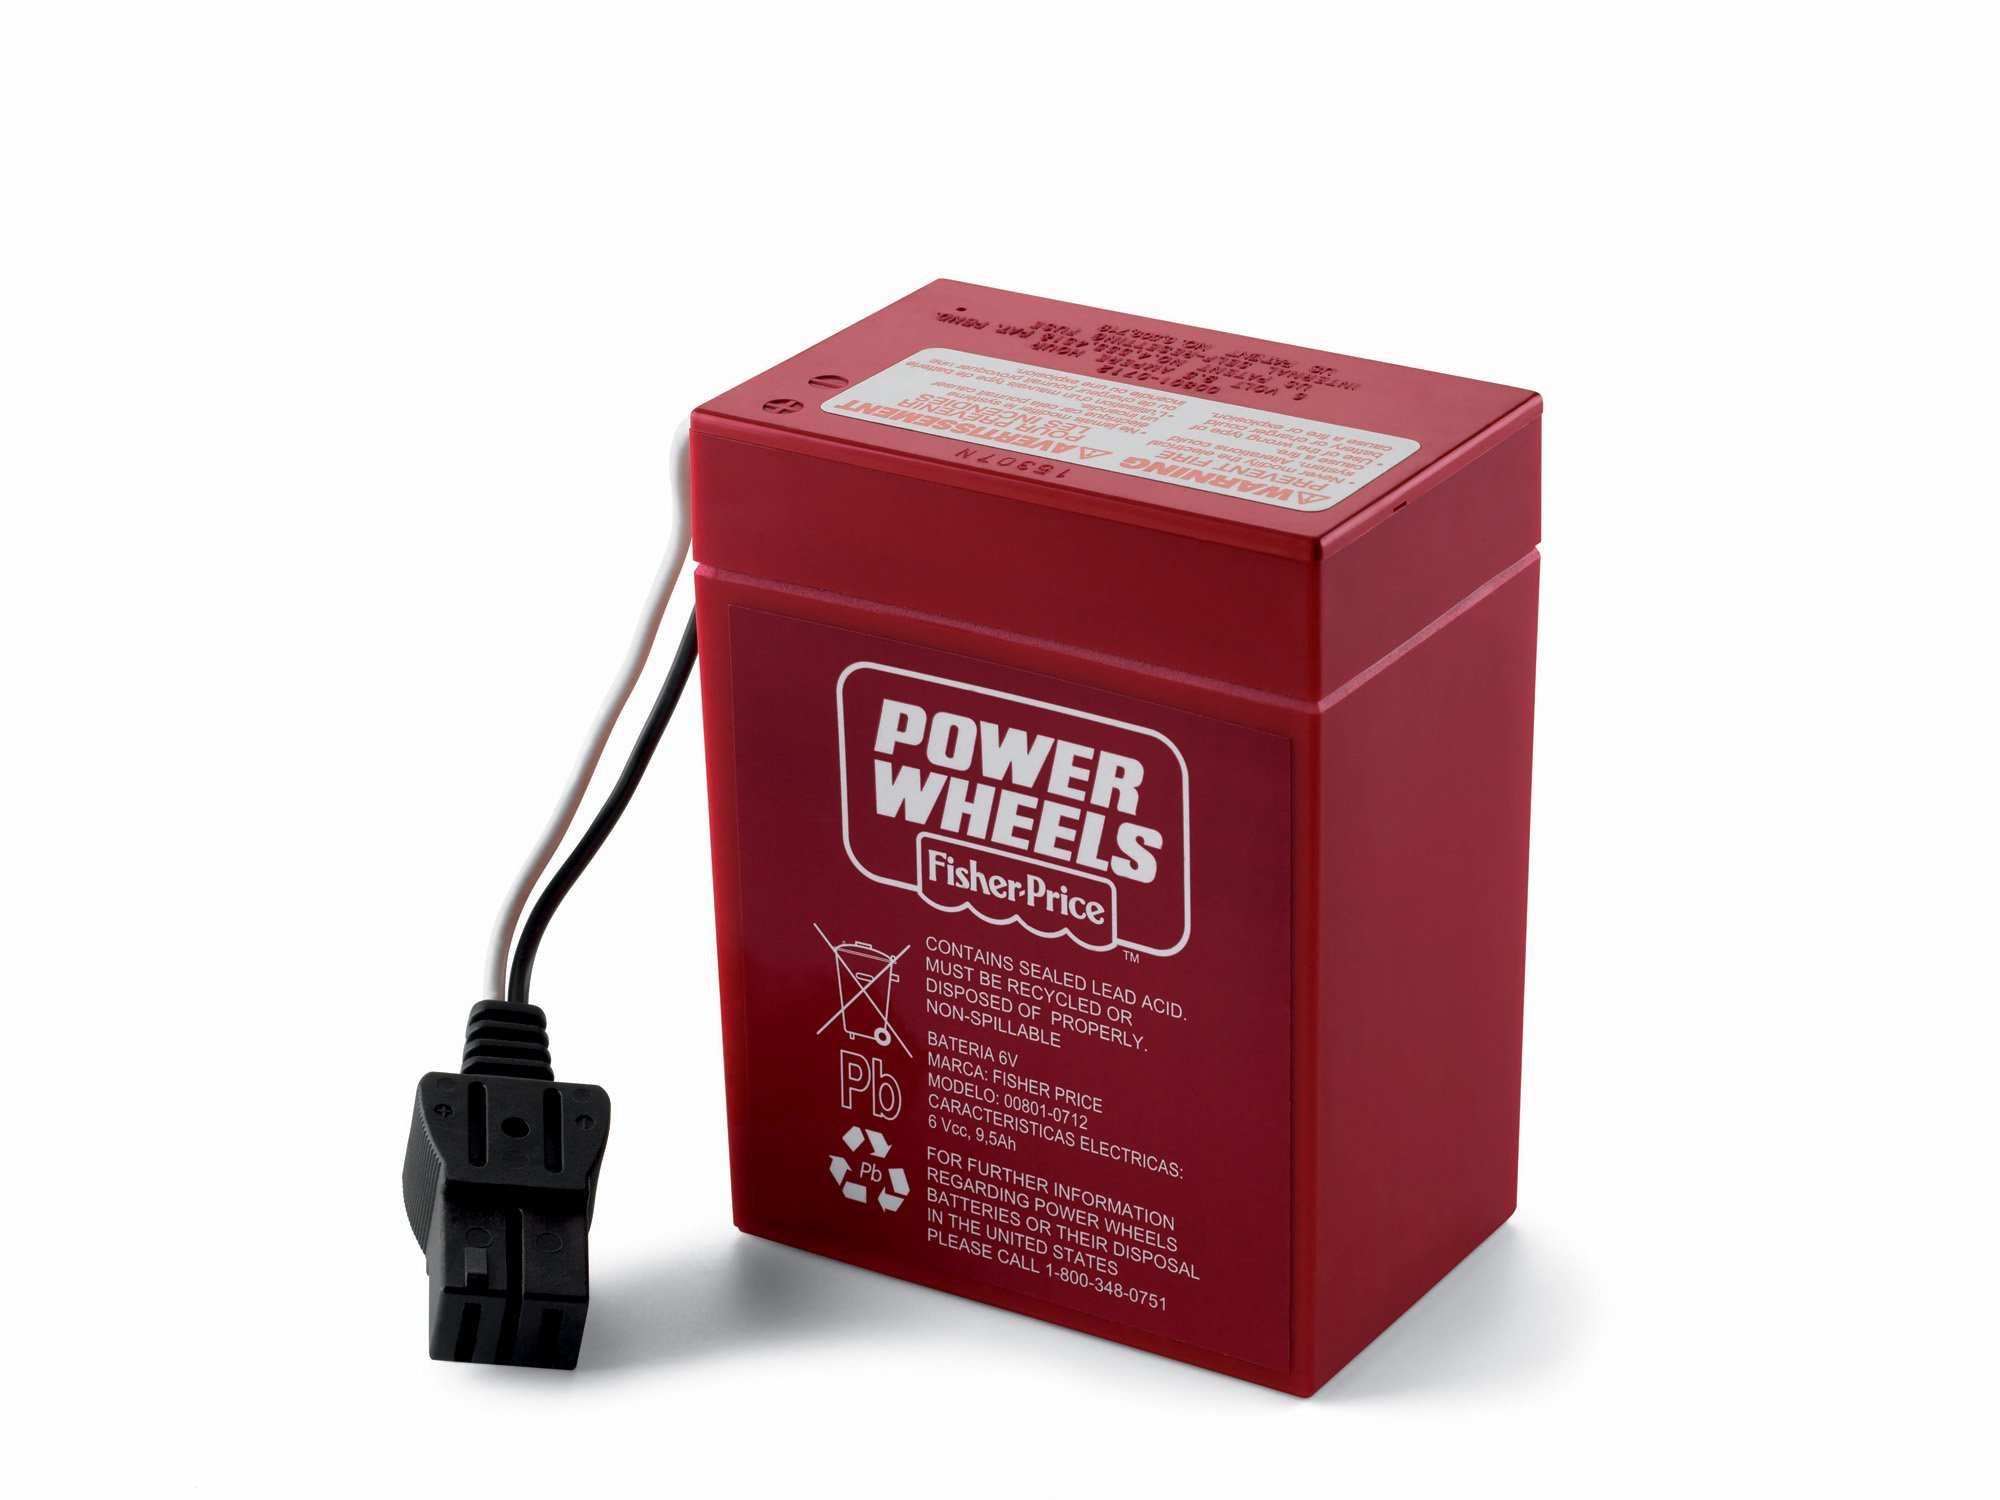 Power Wheels 6-Volt Rechargeable Replacement Battery by Power Wheels